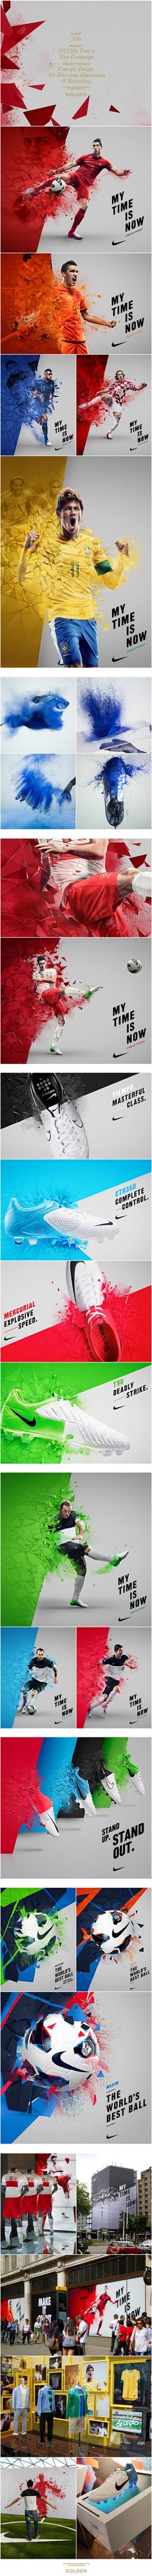 This global campaign was launched to coincide with the 2012 UEFA European Football Championships. It focussed on a select group of Nike athletes: the 'new masters' of football. Concept, art direction and photography by Golden. Photography by Dan Tobin-Smi…